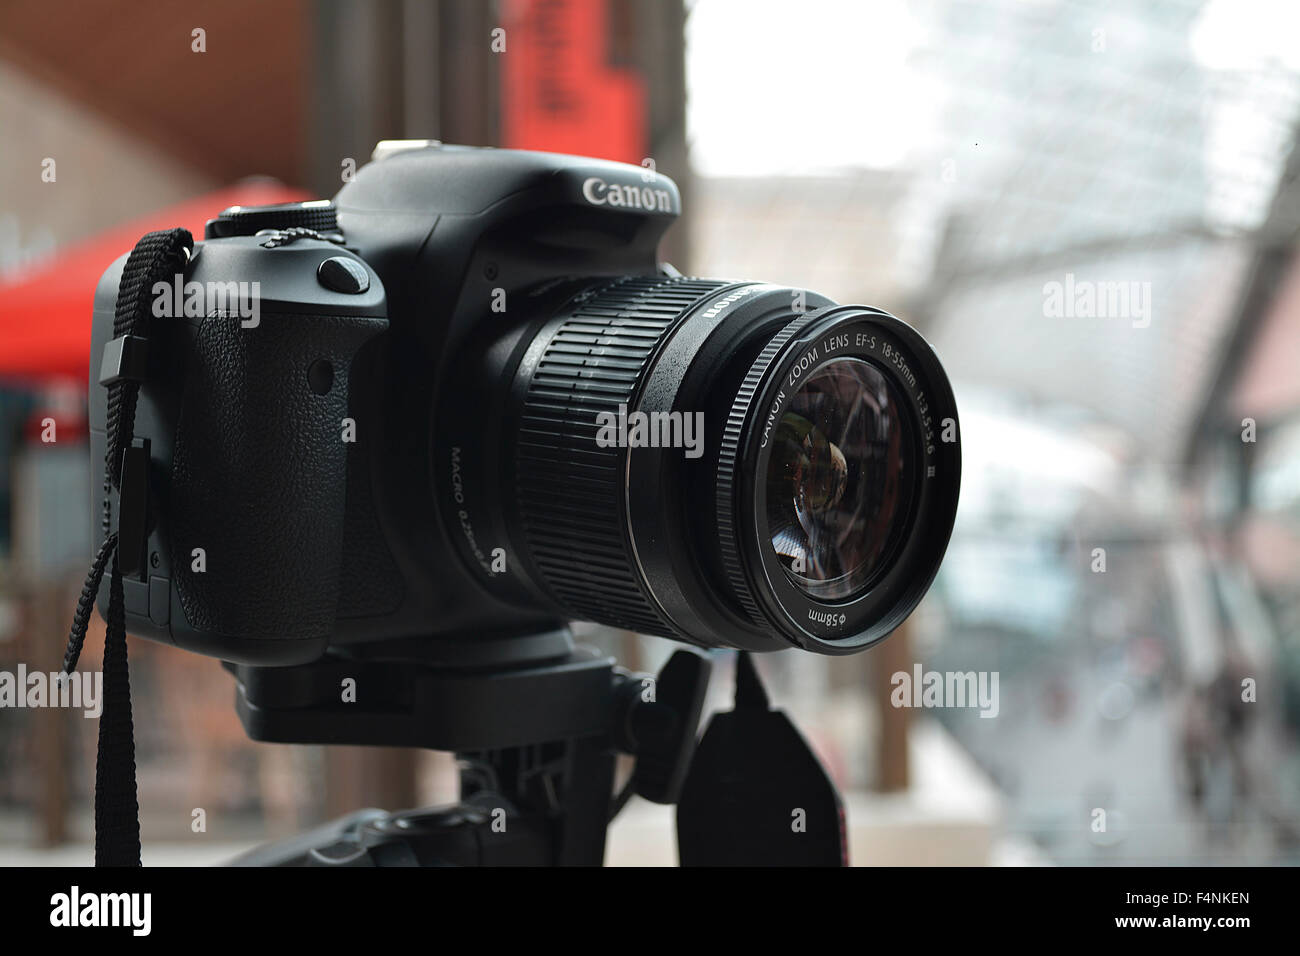 Canon Camera Stock Photos & Canon Camera Stock Images - Alamy